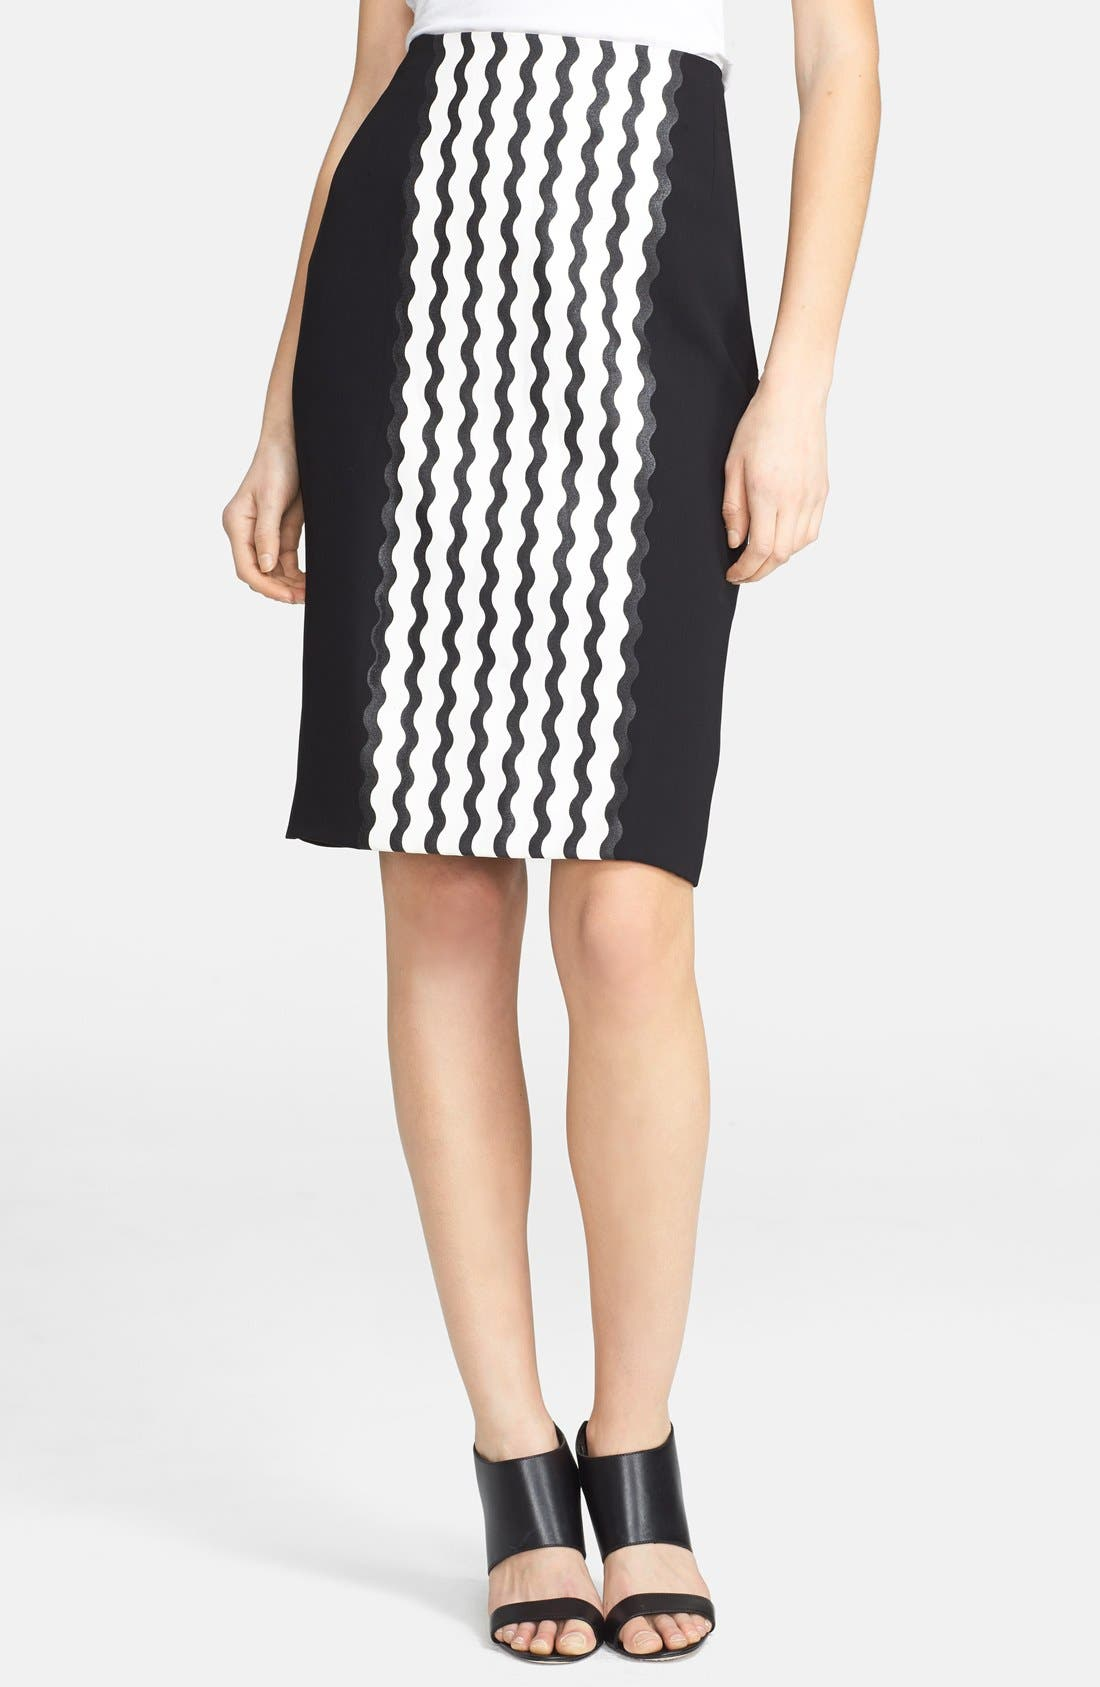 Alternate Image 1 Selected - Opening Ceremony 'Wave' Crepe Pencil Skirt